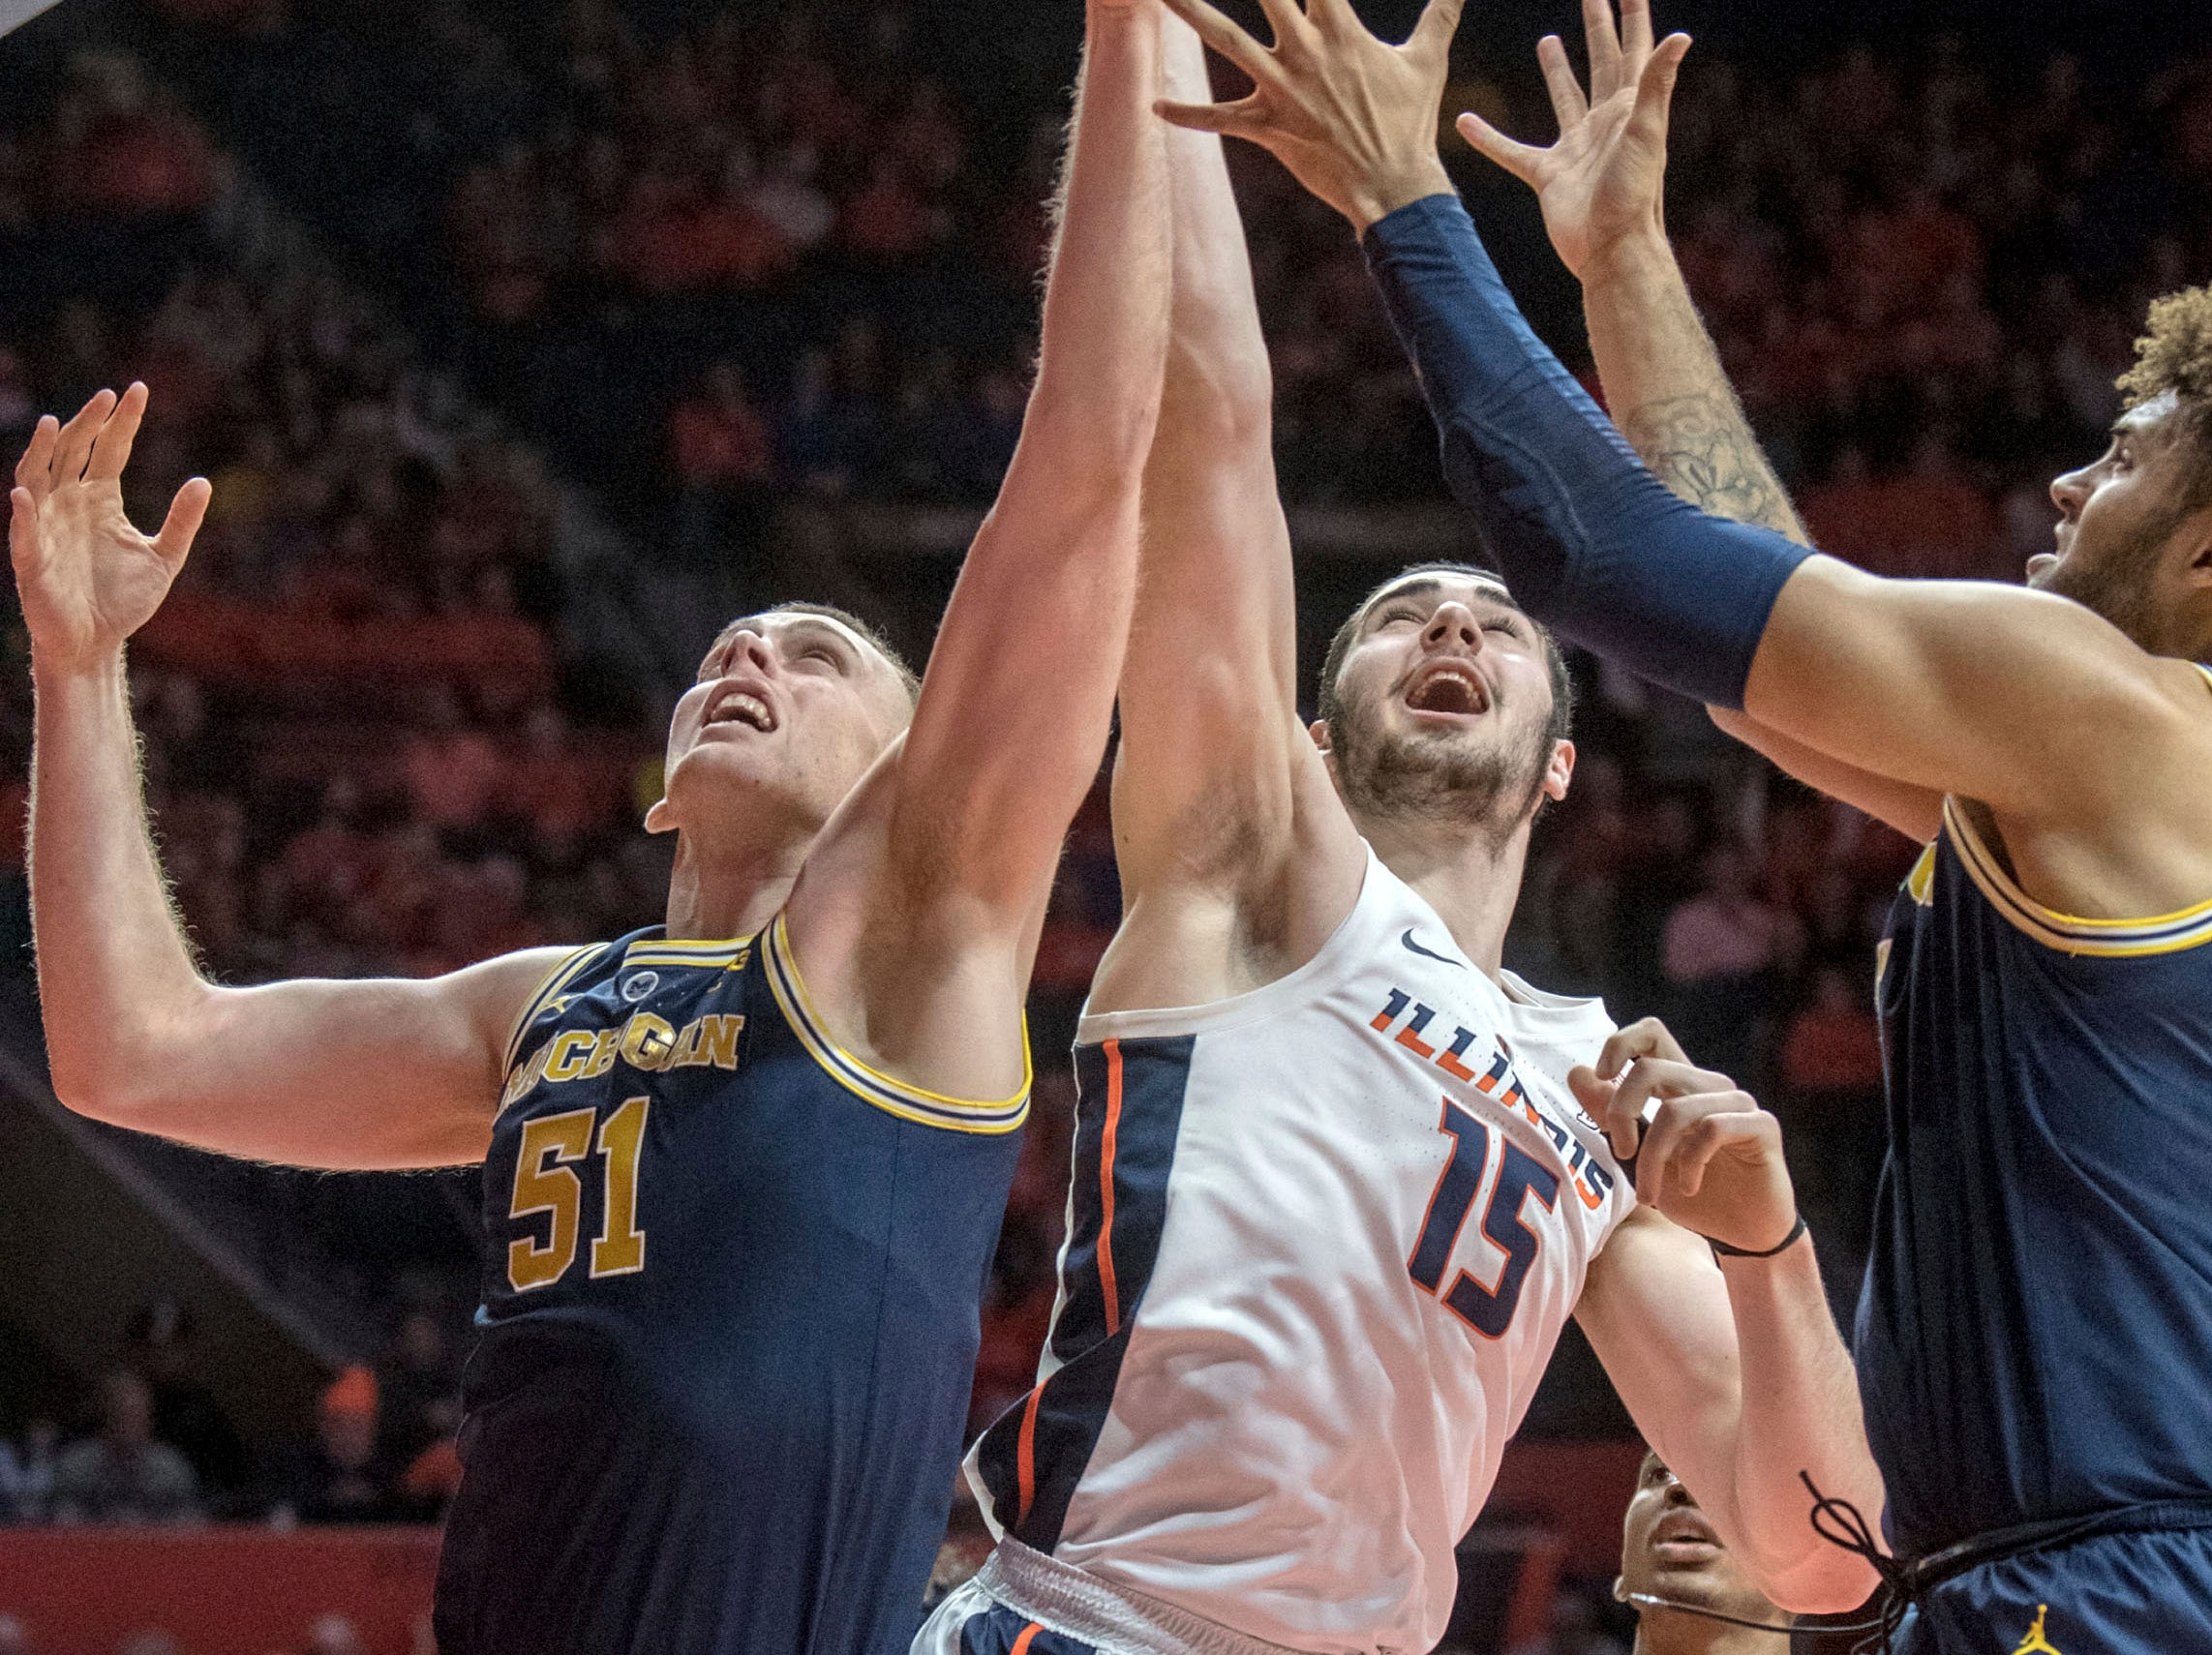 Michigan forward Austin Davis (51) and Michigan forward Isaiah Livers (4) go up for a rebound with Illinois forward Giorgi Bezhanishvili during the first half.